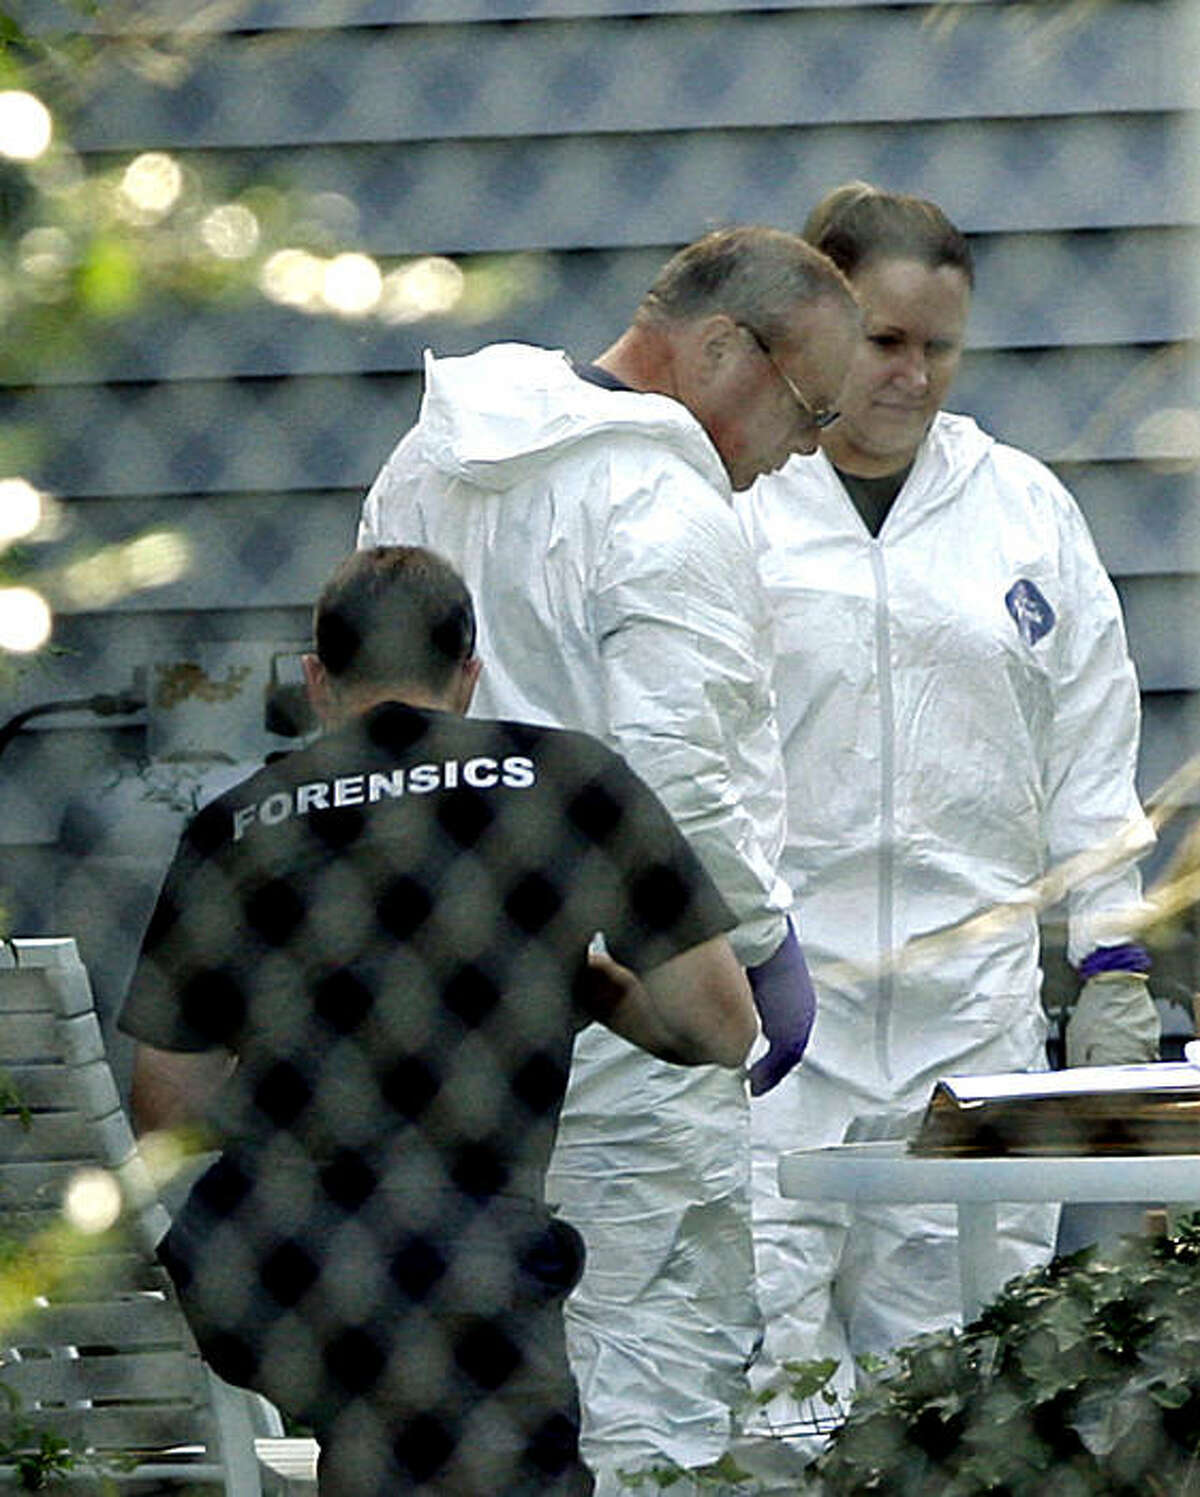 Police work in the back yard of a home where four people were murdered in Farmville, Va., Monday, Sept. 21, 2009. Prosecutors said Monday they had to investigate hundreds of pieces of forensic evidence in their case against an aspiring 20-year-old rapper from California suspected of killing a Virginia pastor and three other people. Richard Alden Samuel McCroskey III made his first court appearance by video in Prince Edward County and was appointed attorney Cary Bowen, who was not present and said he had not talked to the suspect. A preliminary hearing was set for Jan. 11 because of the amount of evidence discovered. (AP Photo/Richmond Times-Dispatch, P. Kevin Morley)